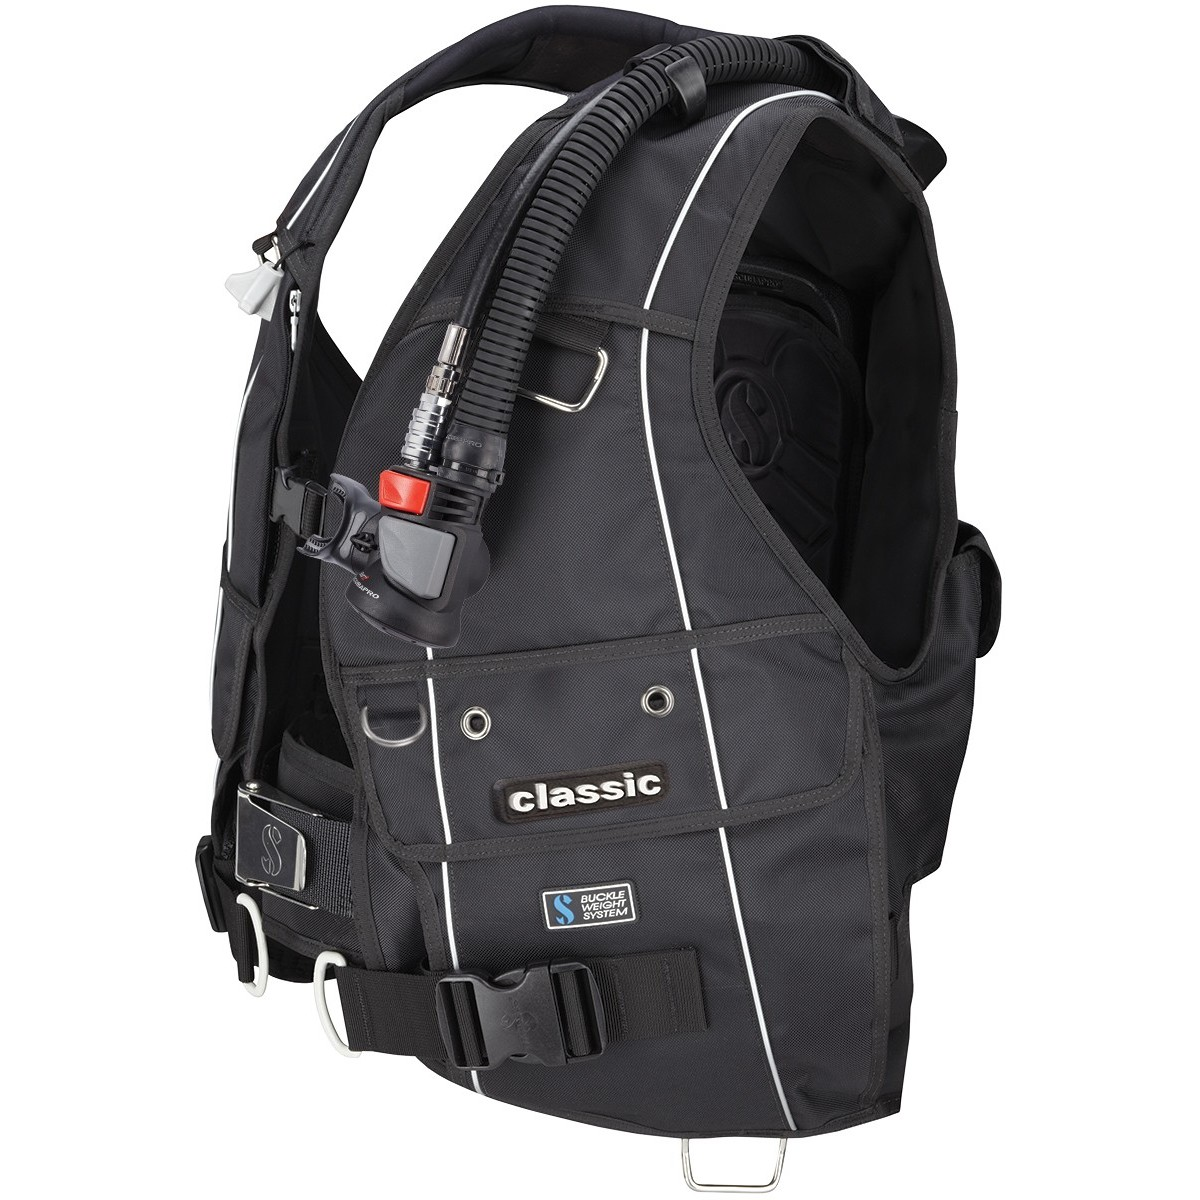 Scubapro CLASSIC Jacket Style BCD - Air 2